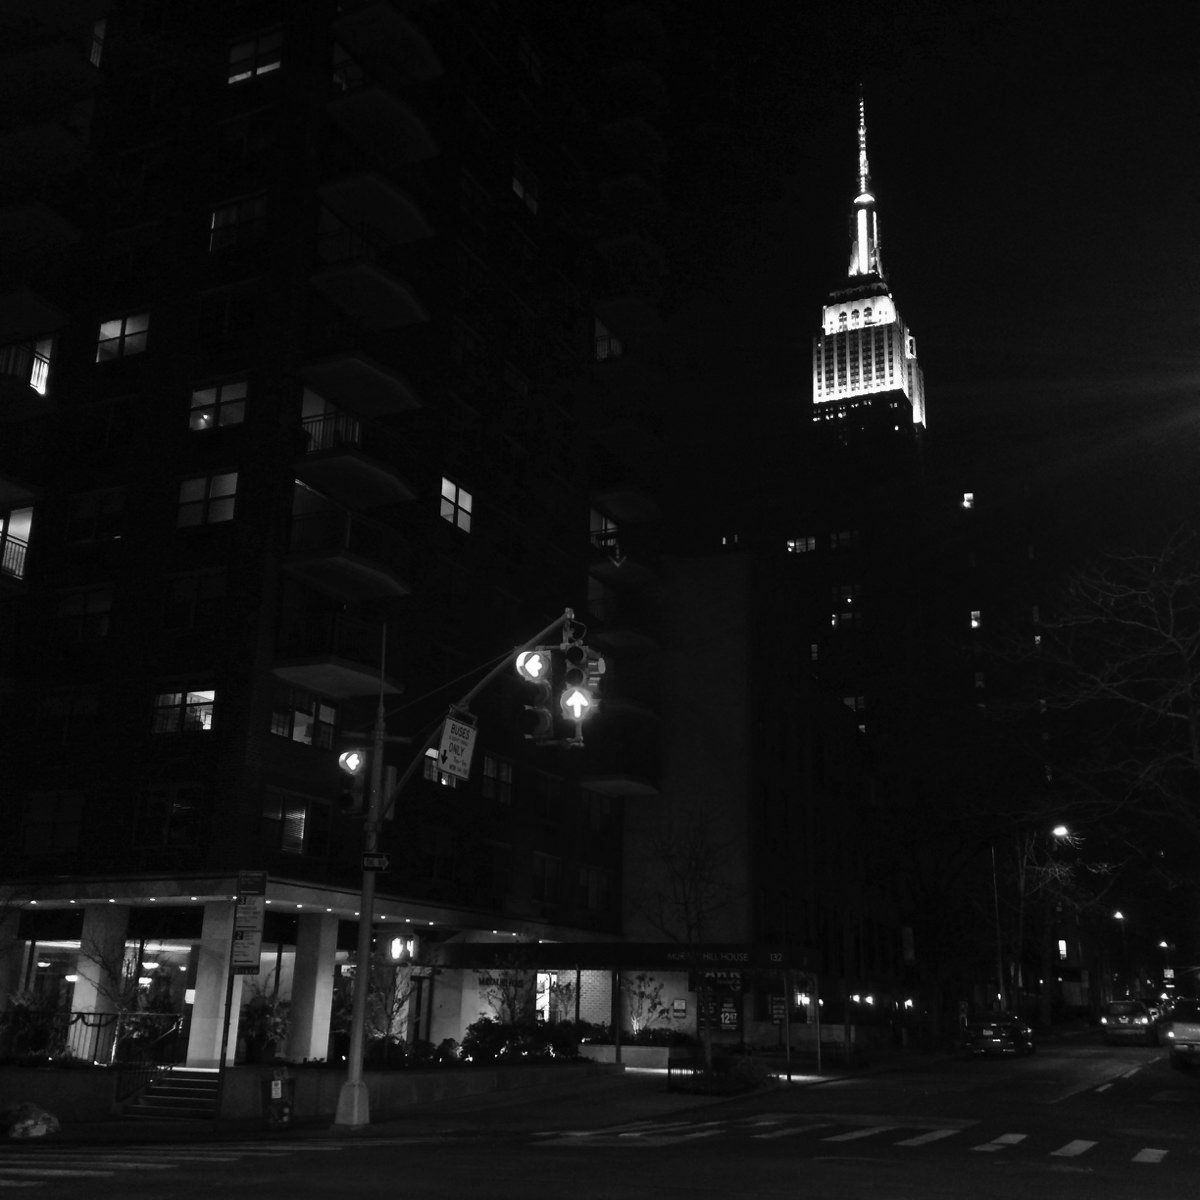 The top of the Empire State building lit up at night.